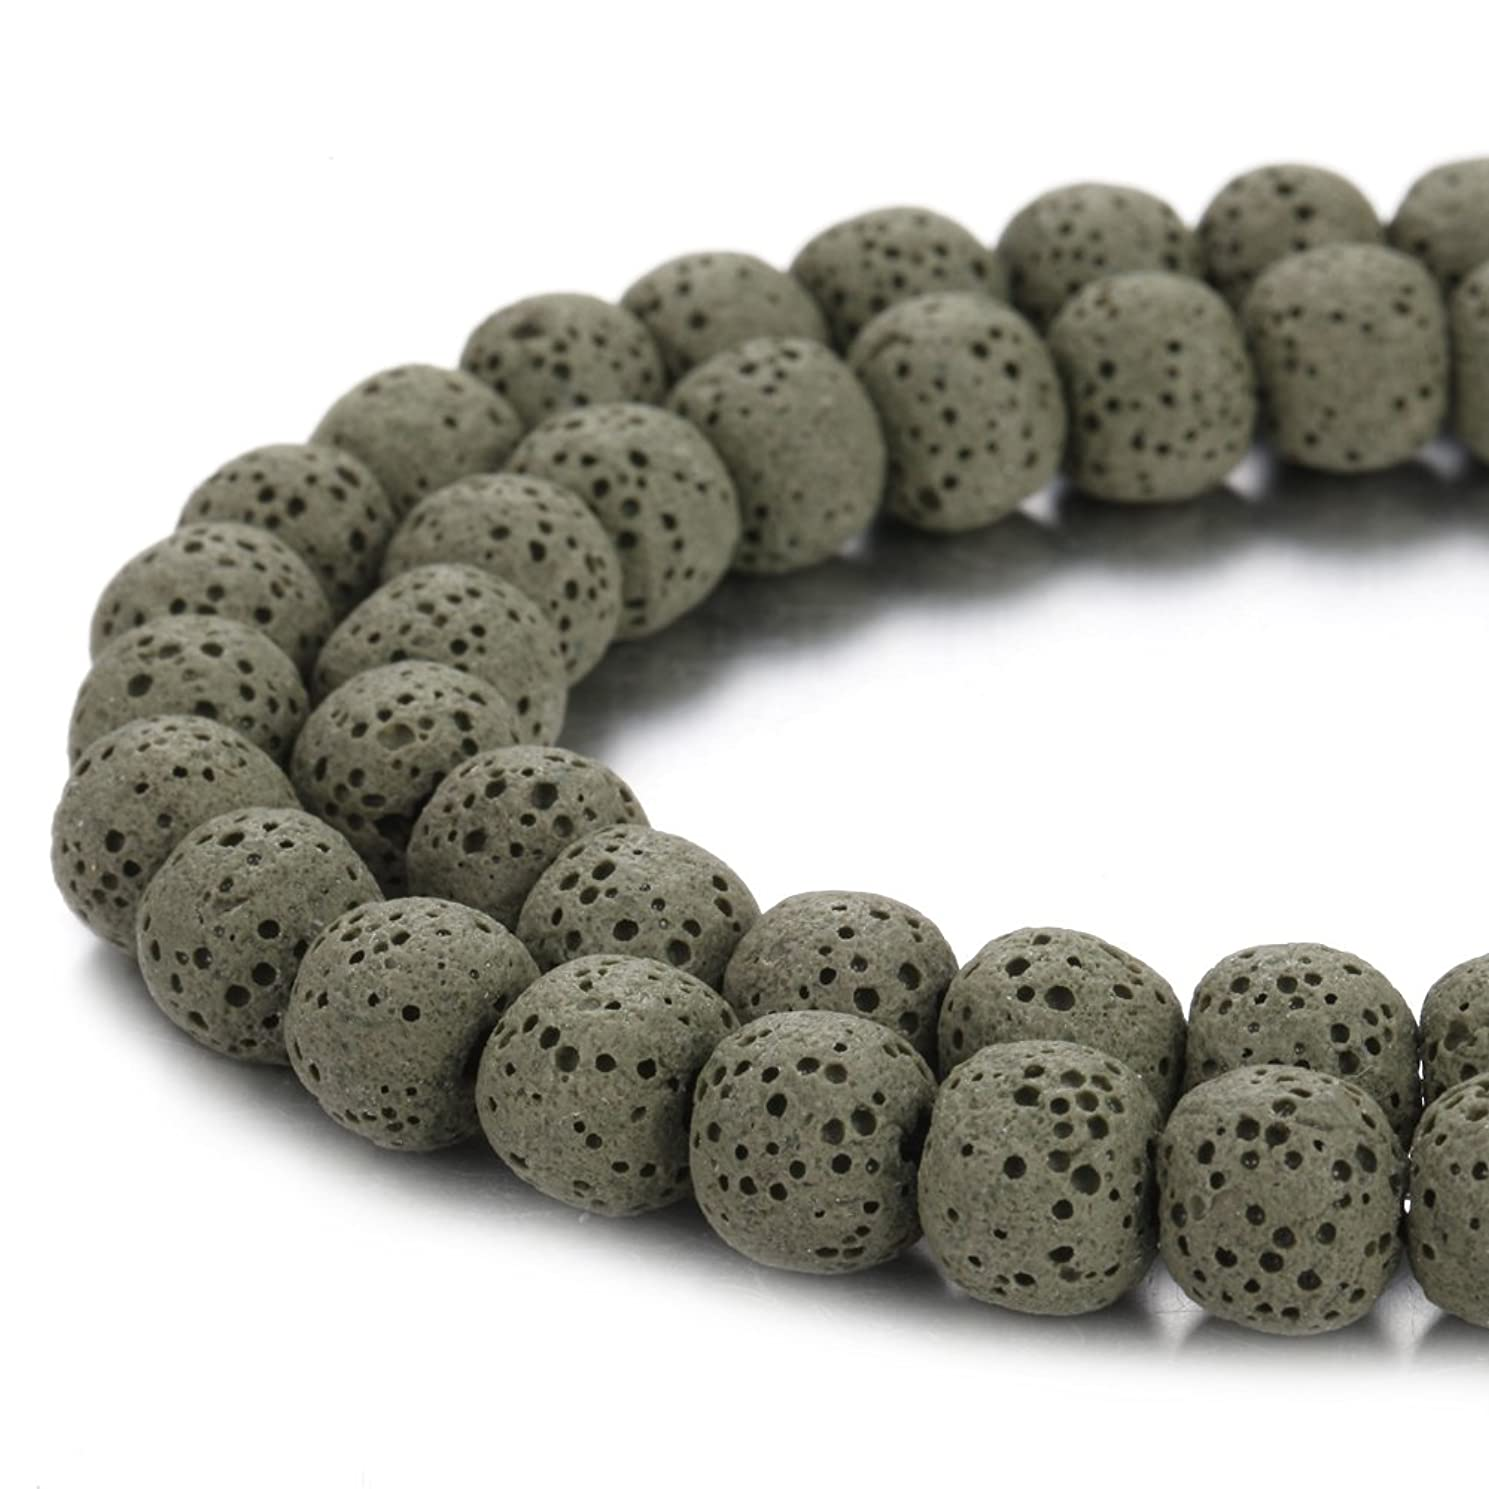 BORUO Natural 10mm Amy Green Color Lava Rock Stone Semi Precious Gemstone Round Loose Beads Energy Stone Healing Power for Jewelry Making (Approxi 38pcs per strand)